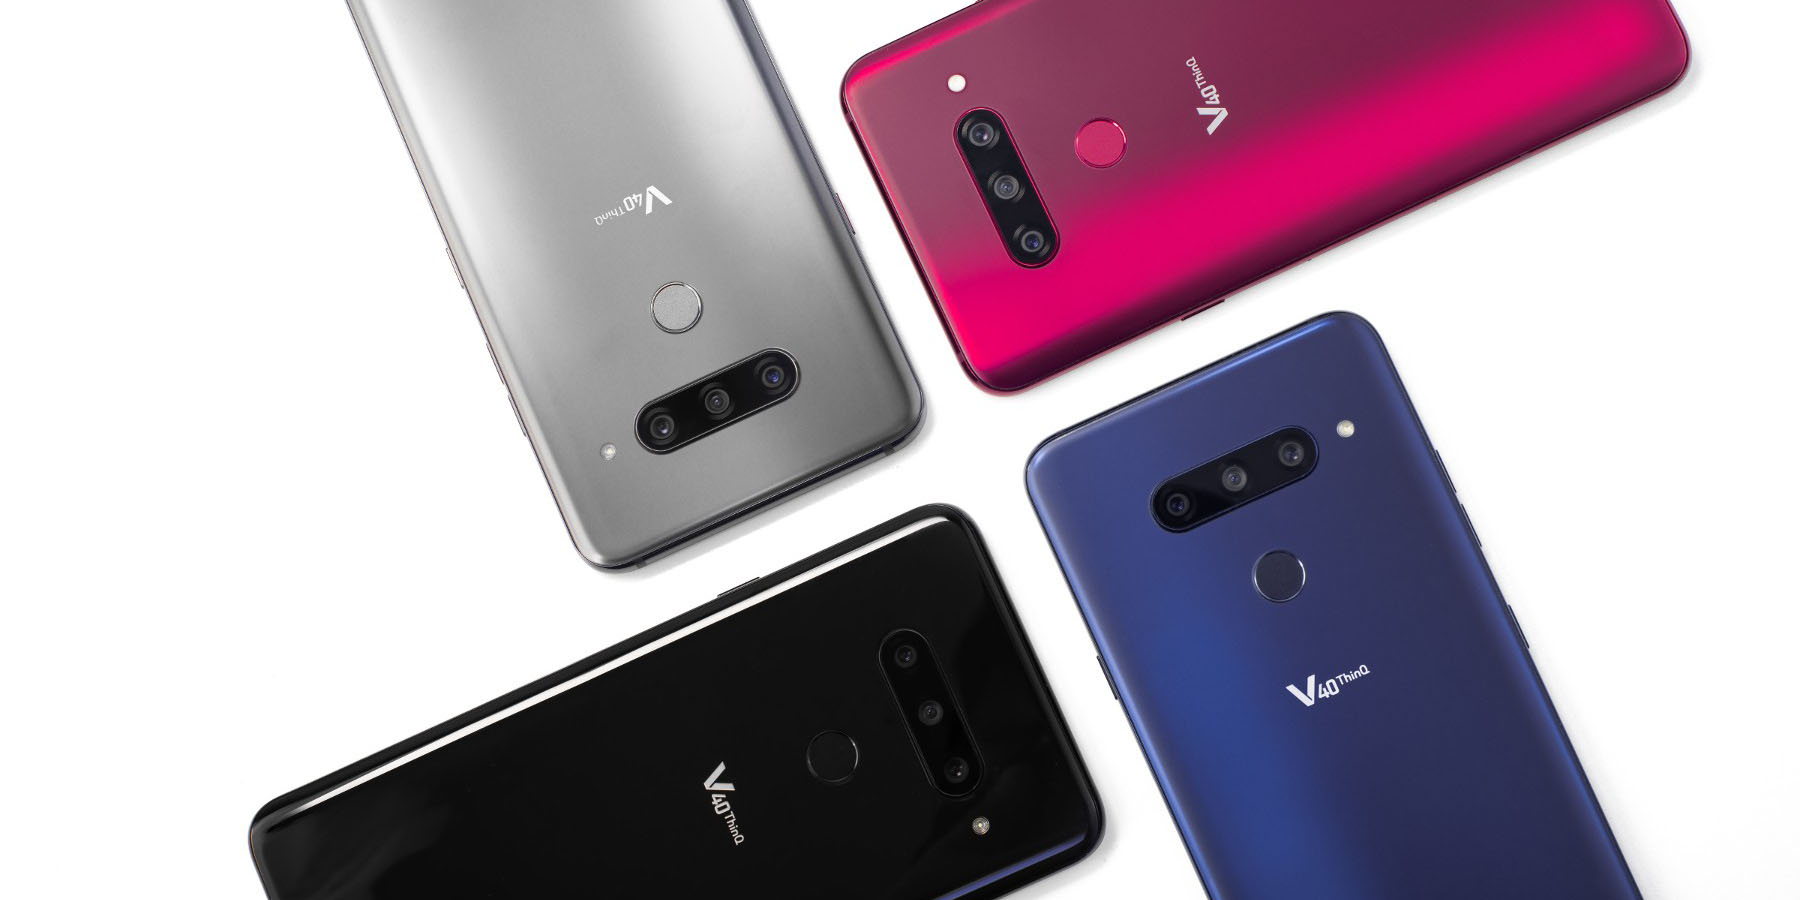 LG V40 ThinQ gets Android Pie in the US, only second update from the company